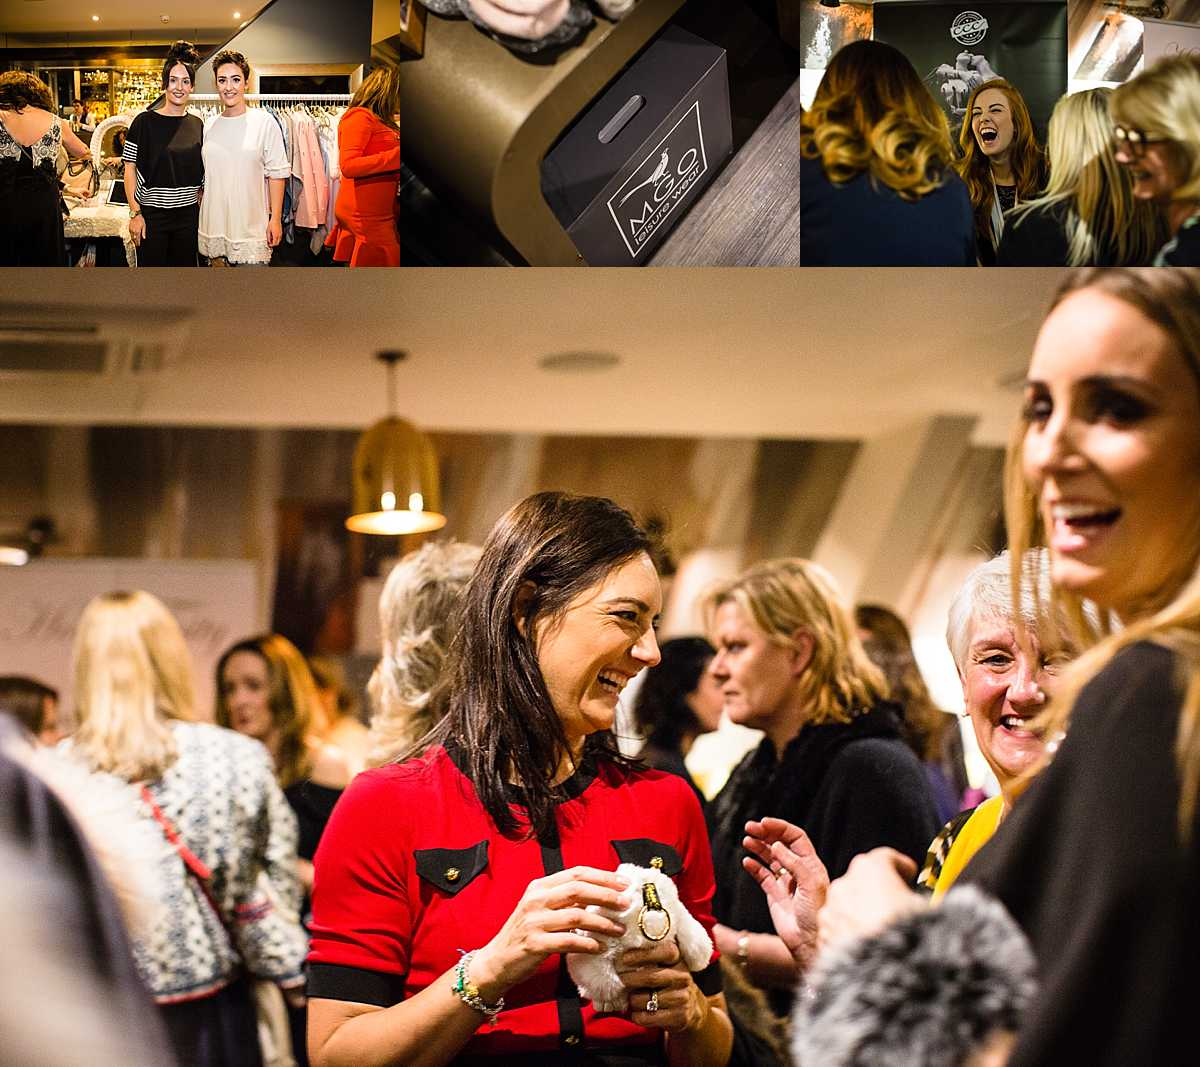 candid shots of ladies laughing and smiling at 1539 chester race course event